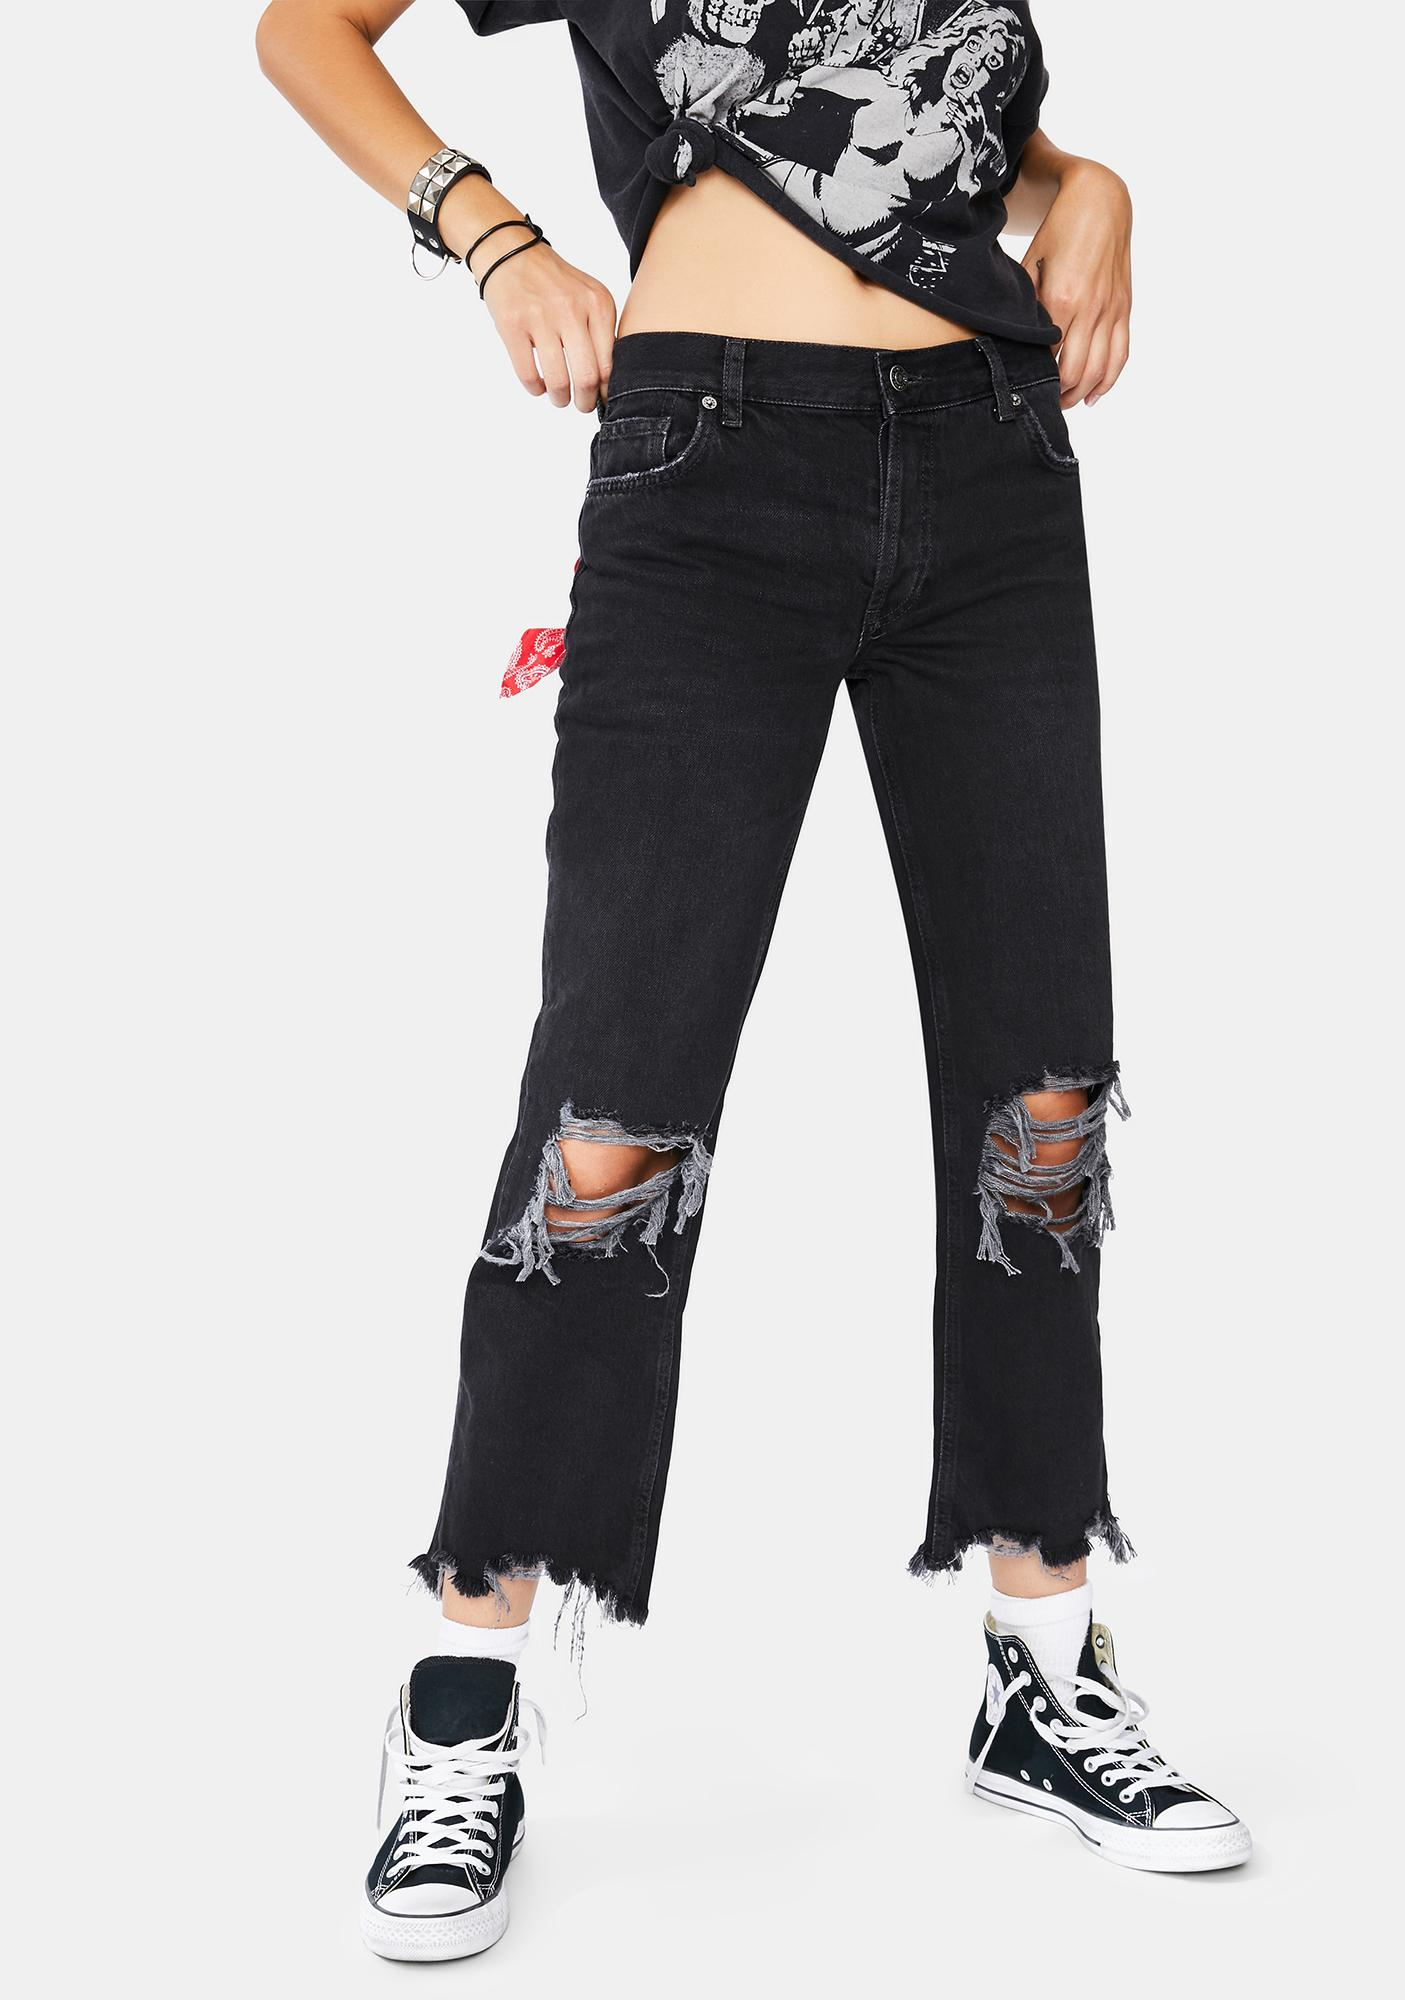 Free People Maggie Mid-Rise Straight Jeans